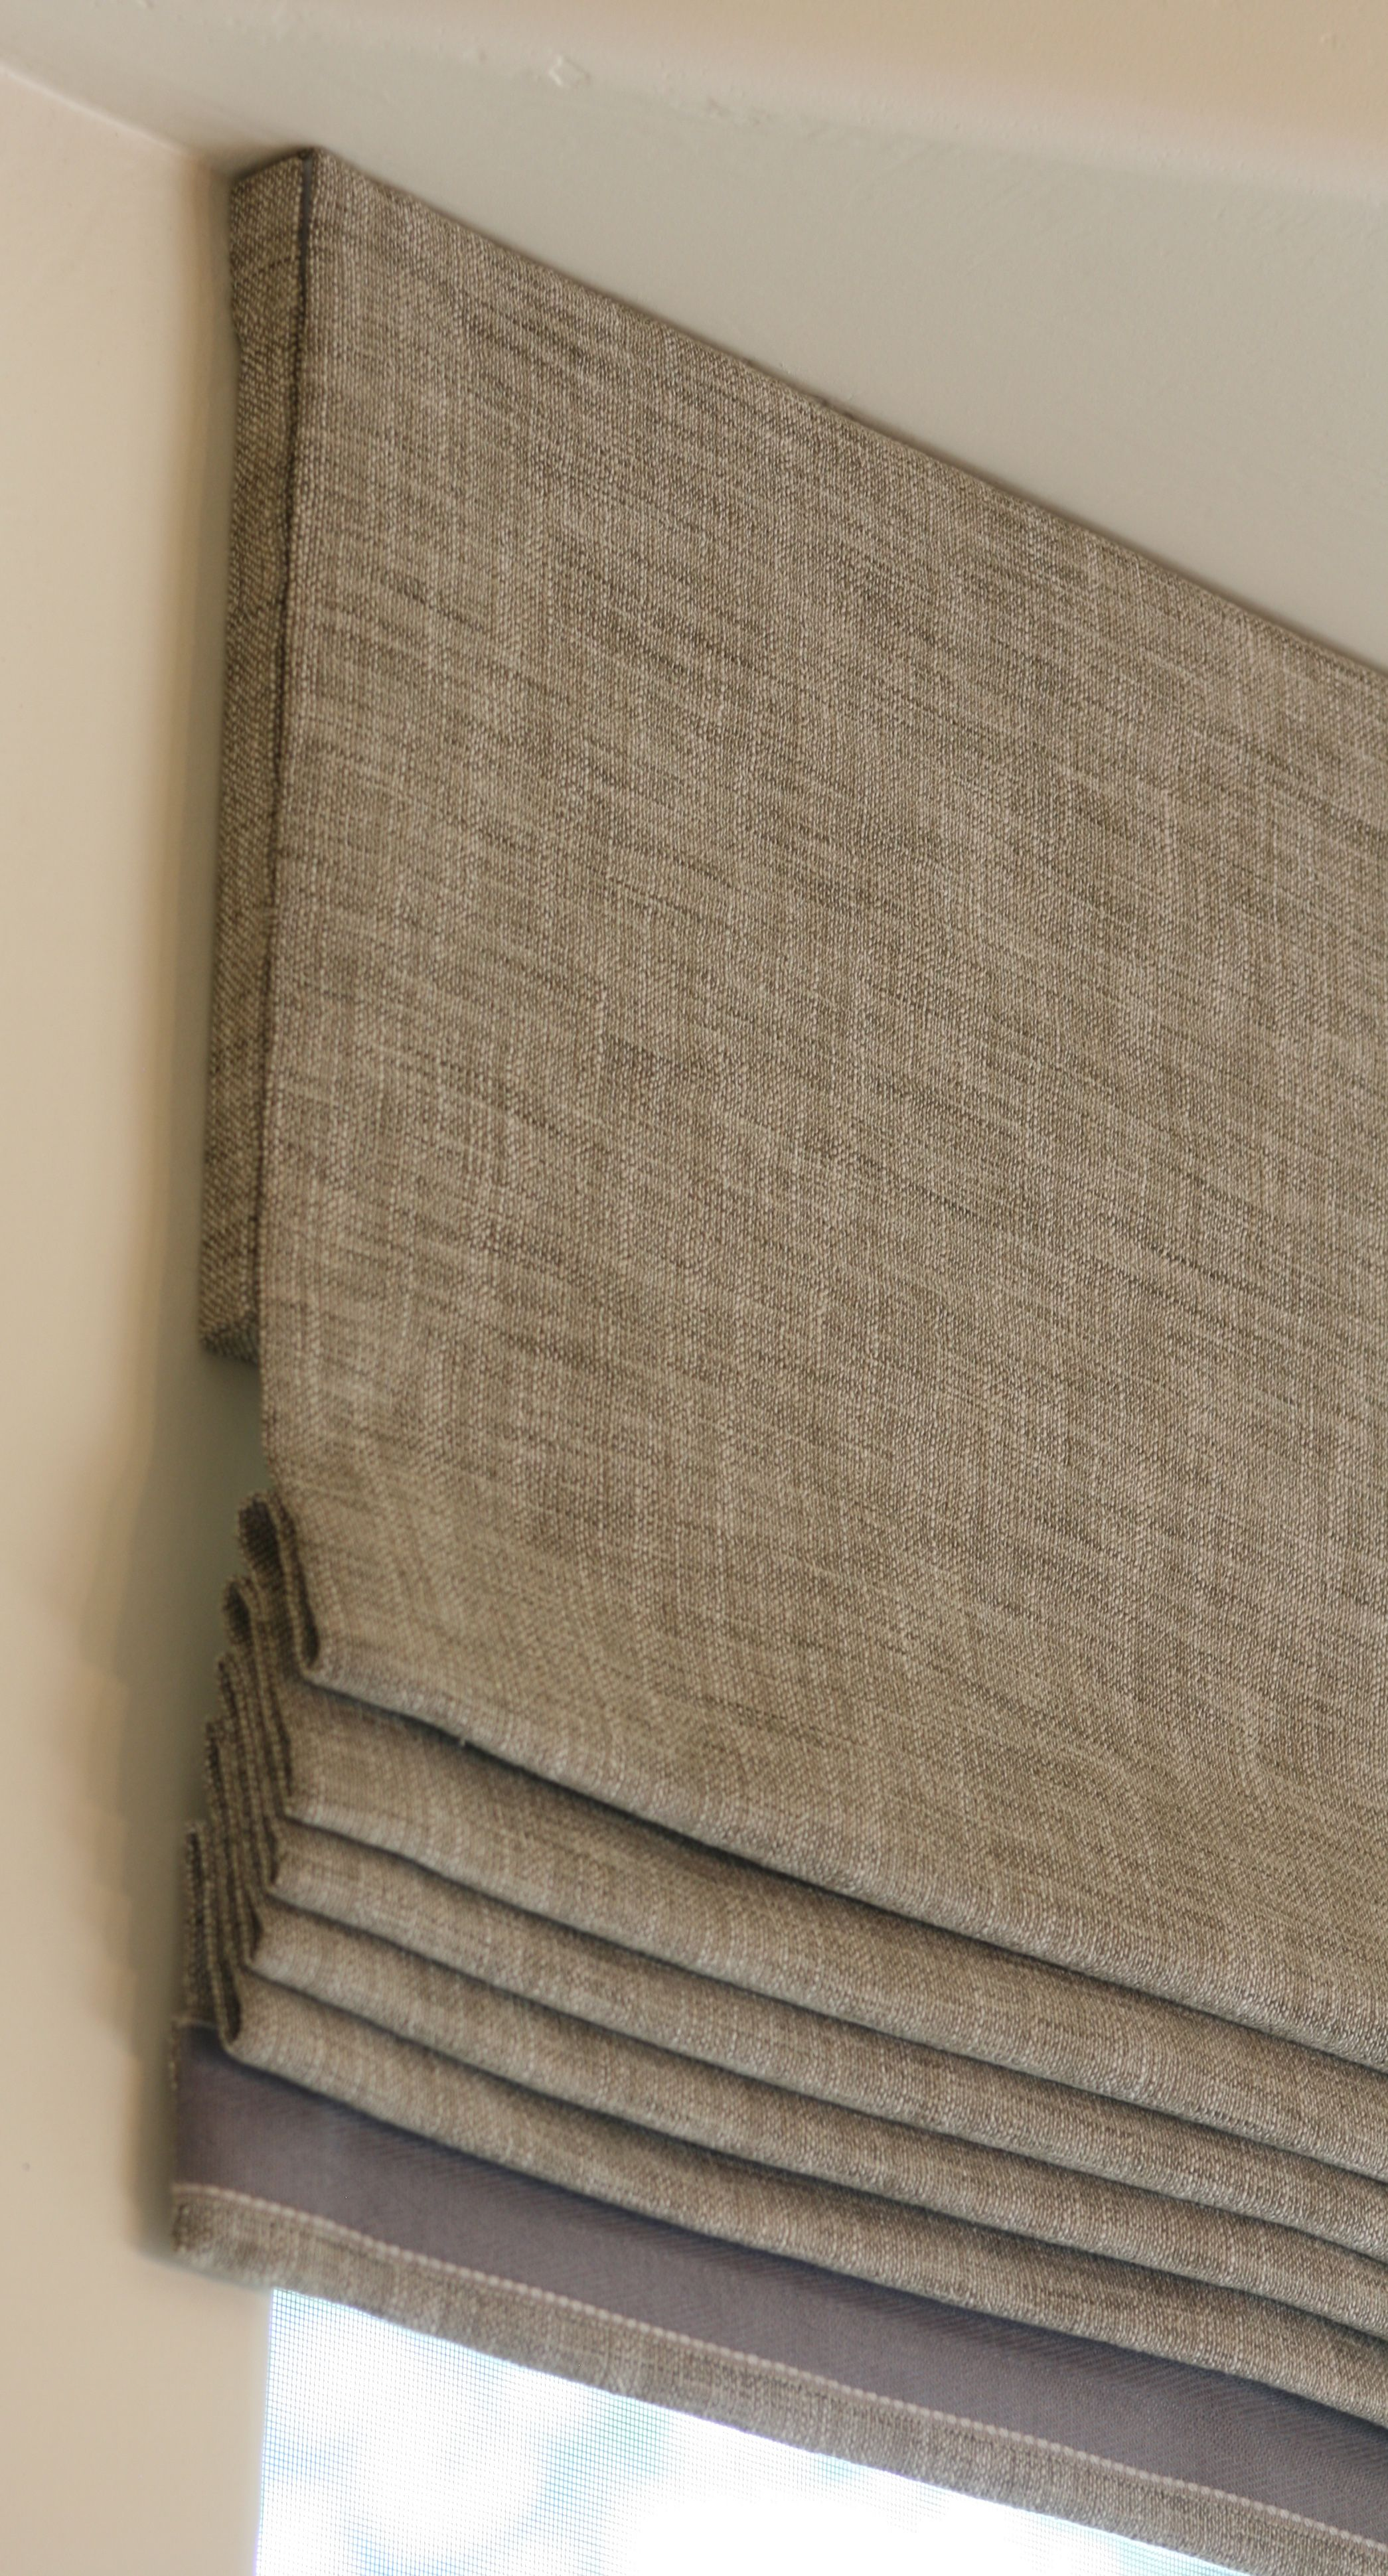 Neat edge and trim to Roman blind could take this up to ceiling for